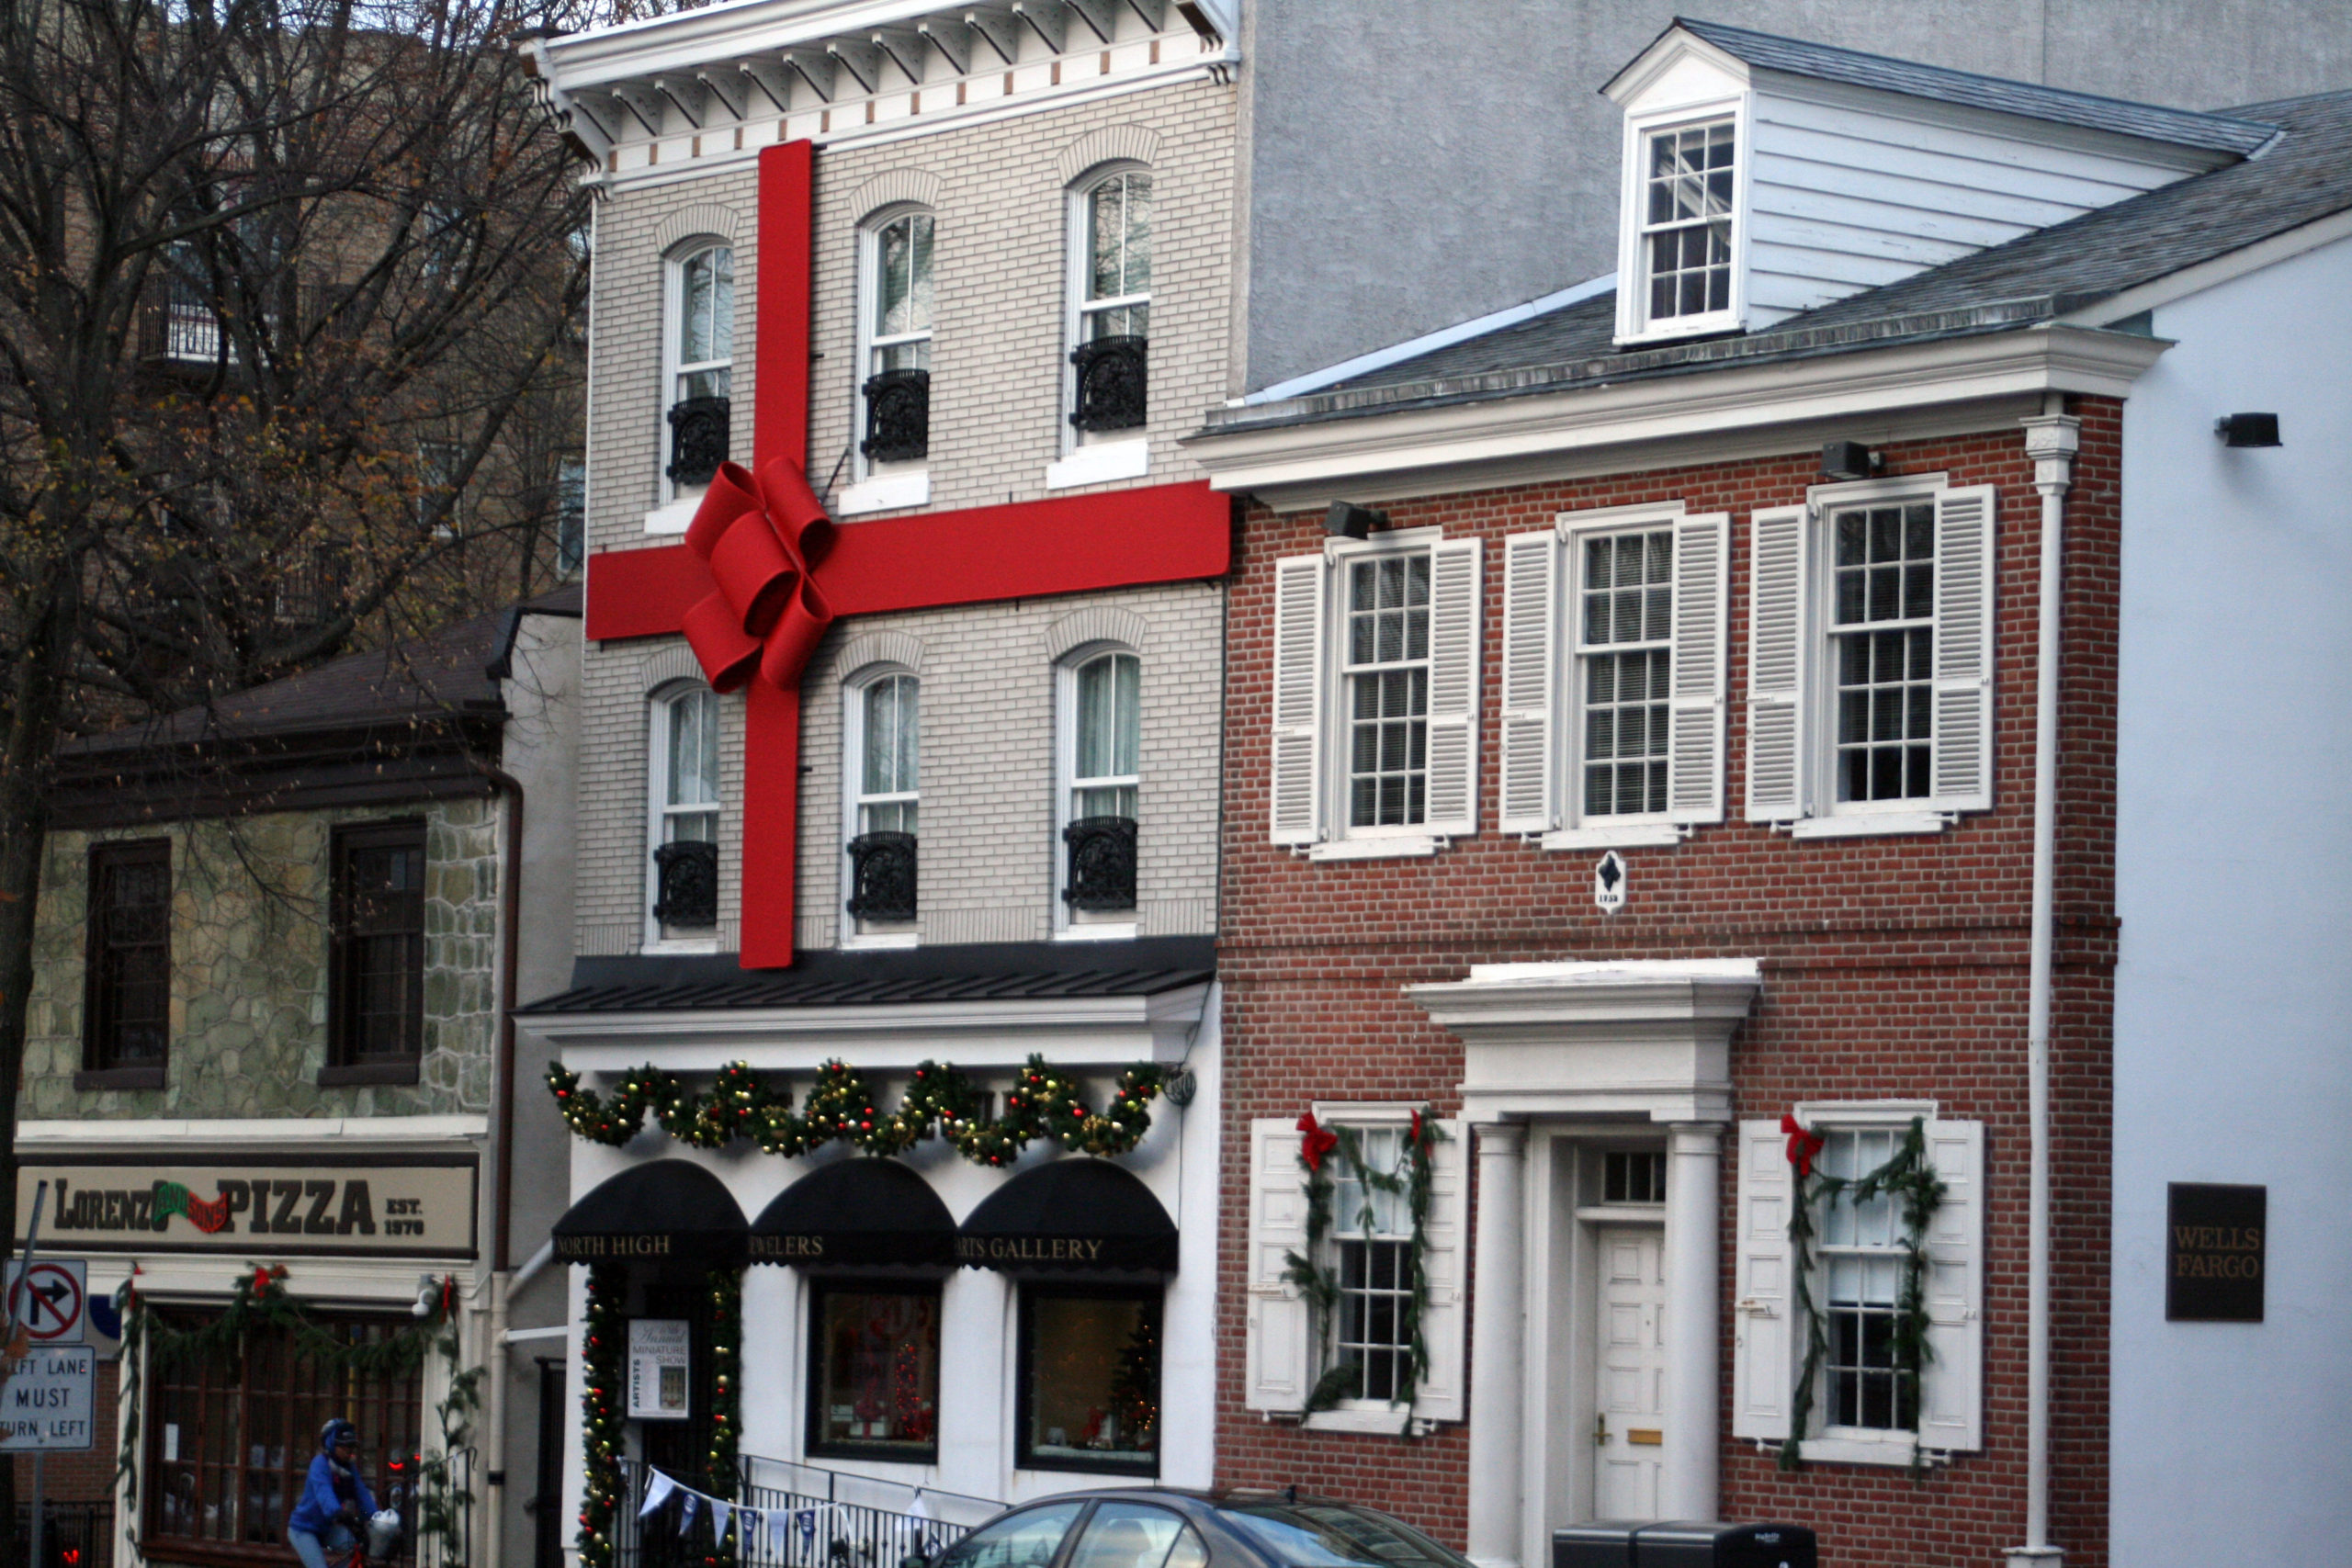 A West Chester Jeweler Has Transformed Her Store into a Giant Present and It's Awesome